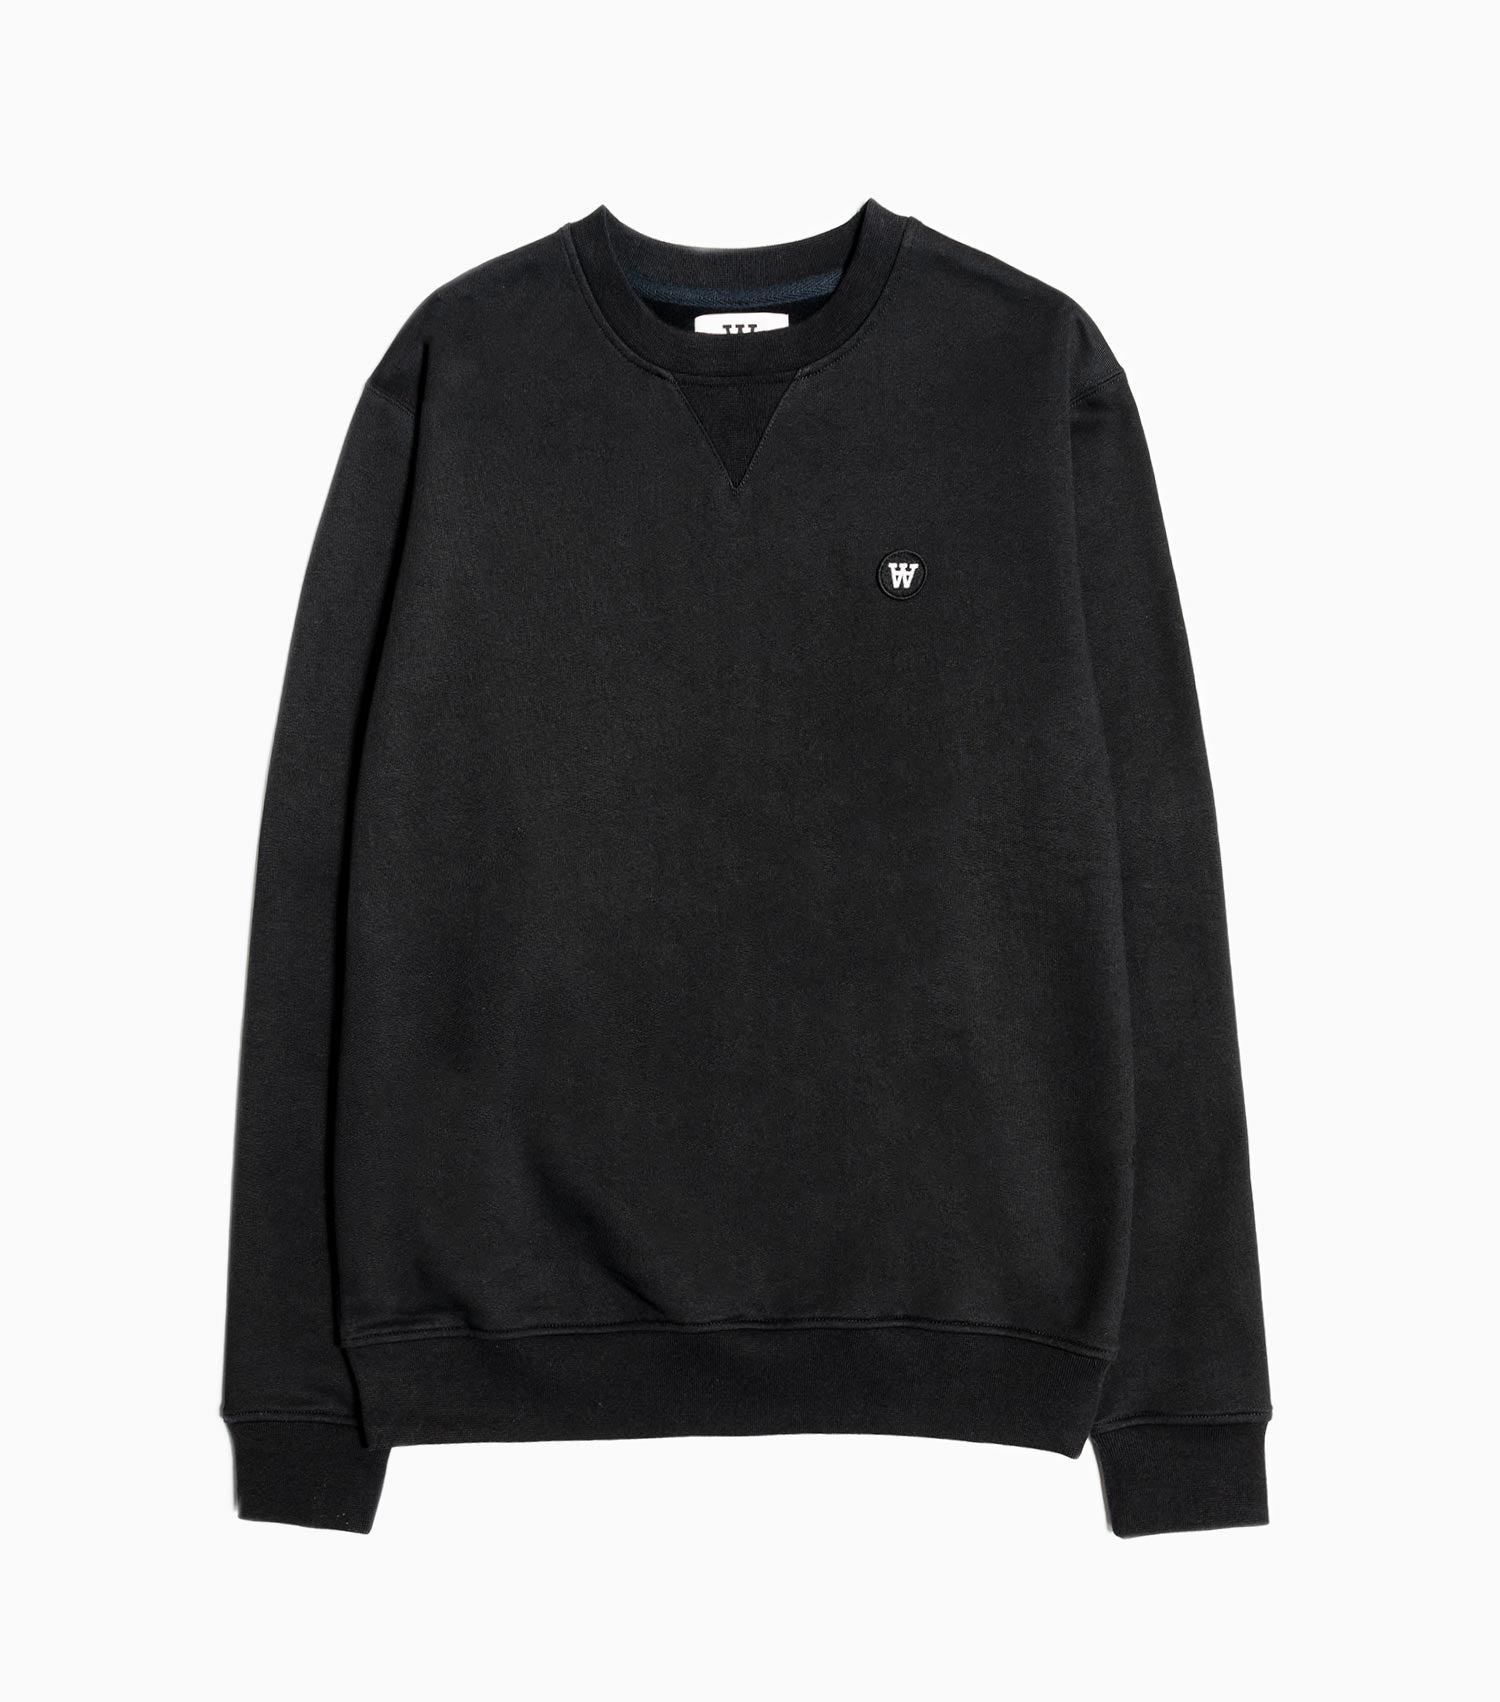 Wood Wood Double A Tye Sweatshirt - Black